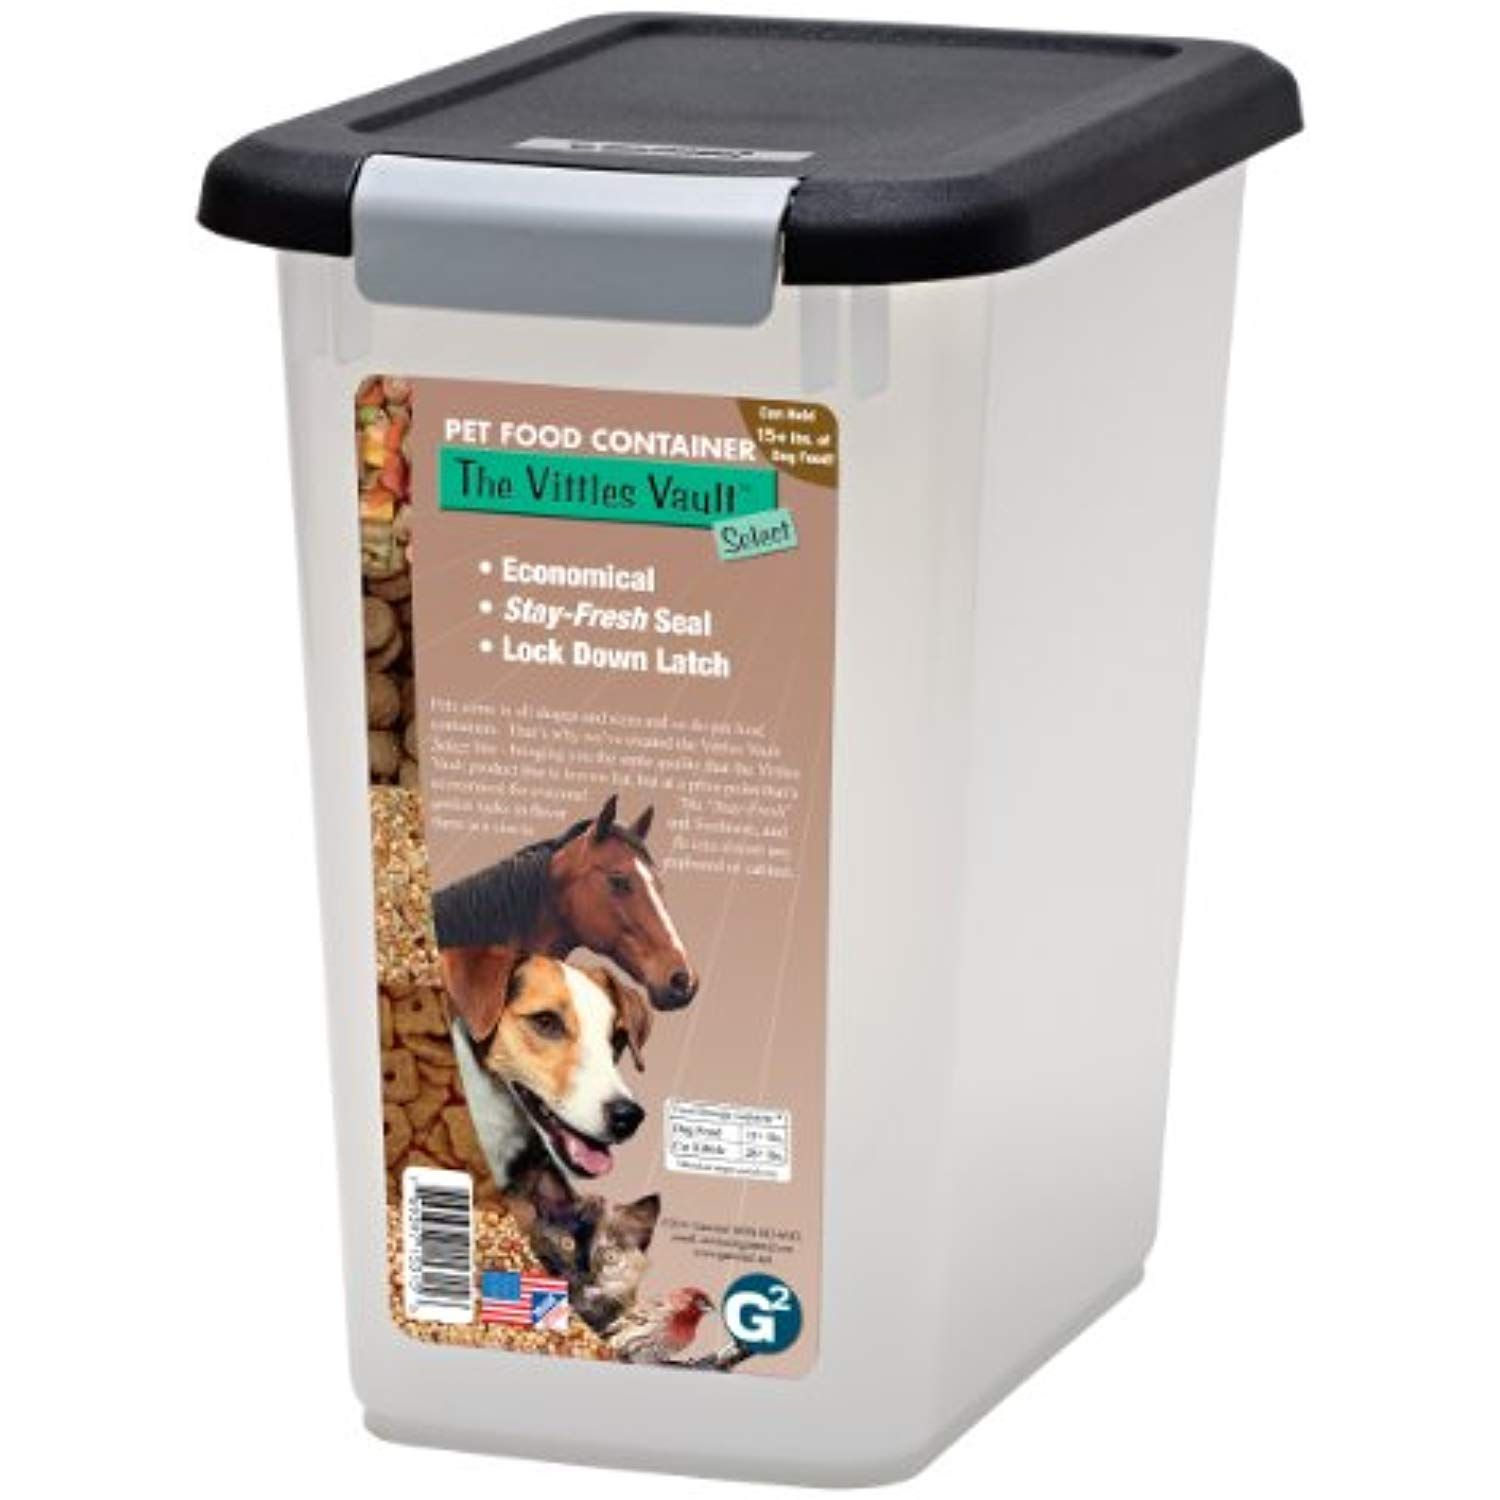 Gamma2 Vittles Vault 15 Lb Pet Food Container You Can Get